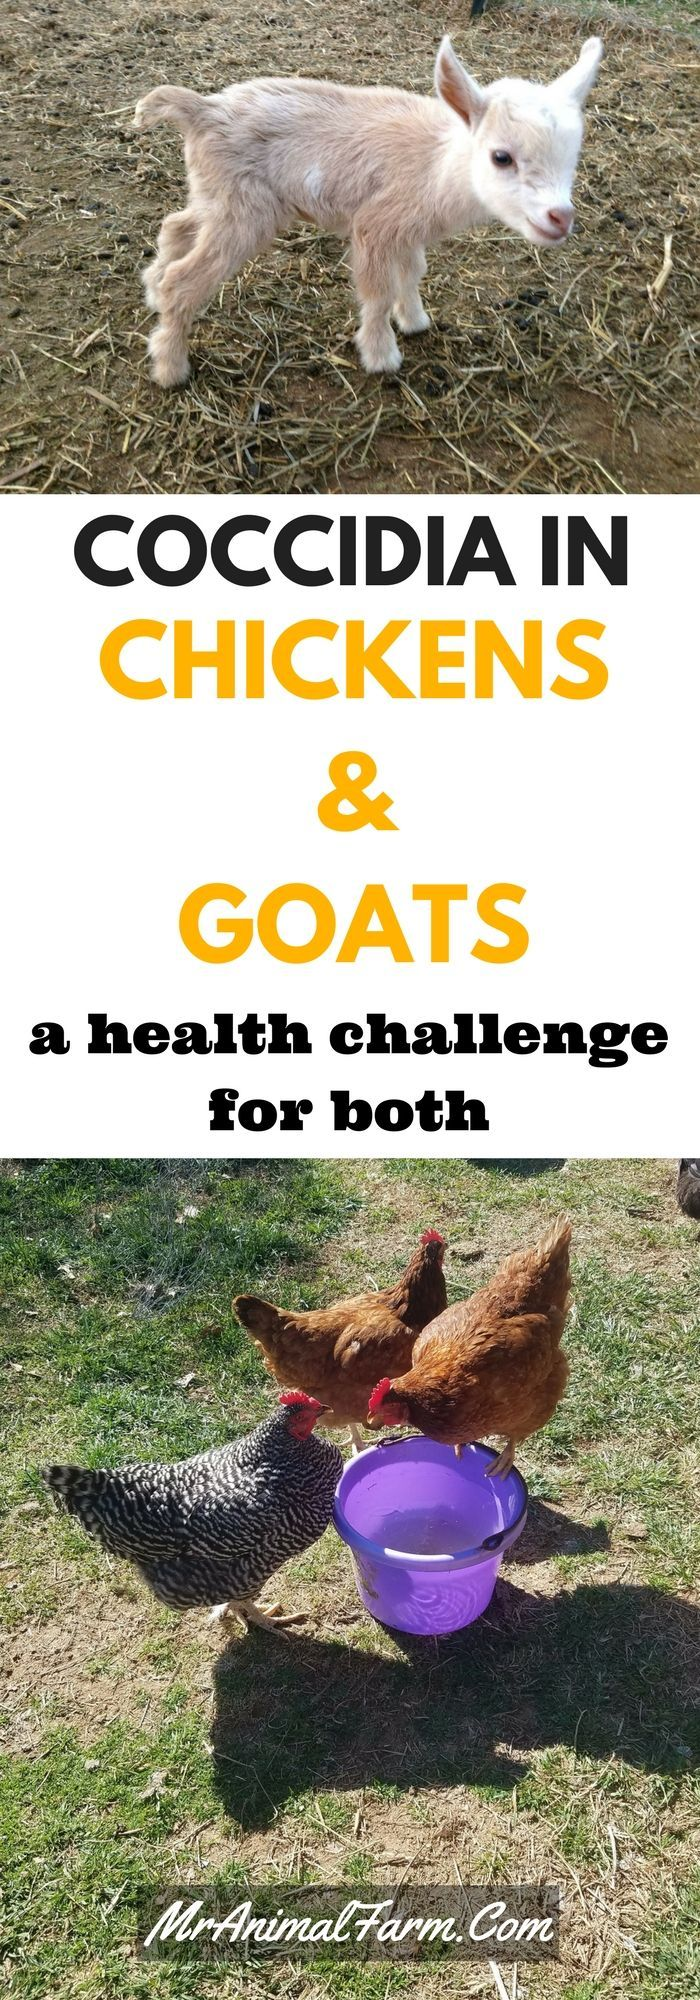 Coccidia can cause issues for both chickens and goats.  Find out causes, symptoms and treatments.